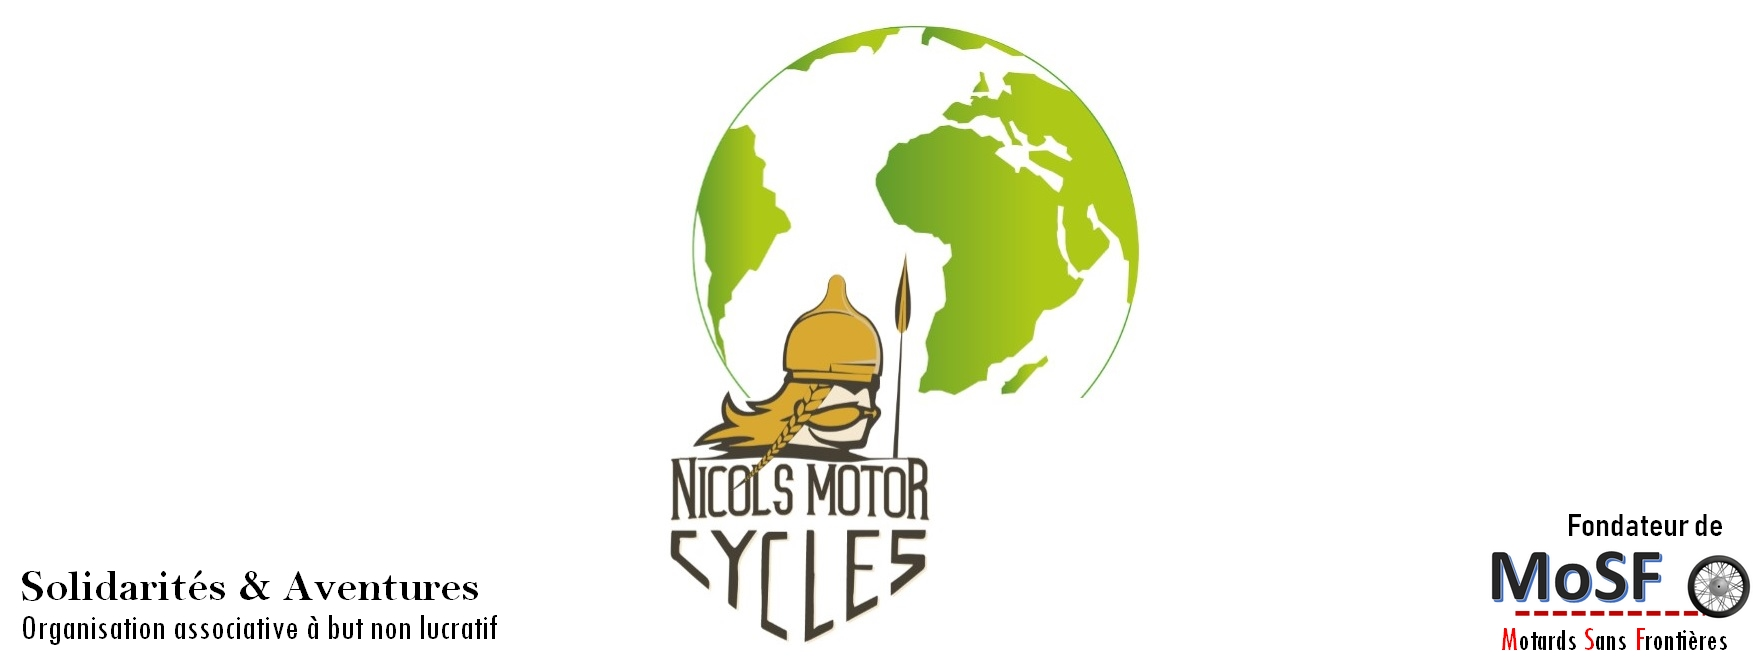 NMC France – Nicols Motor Cycles